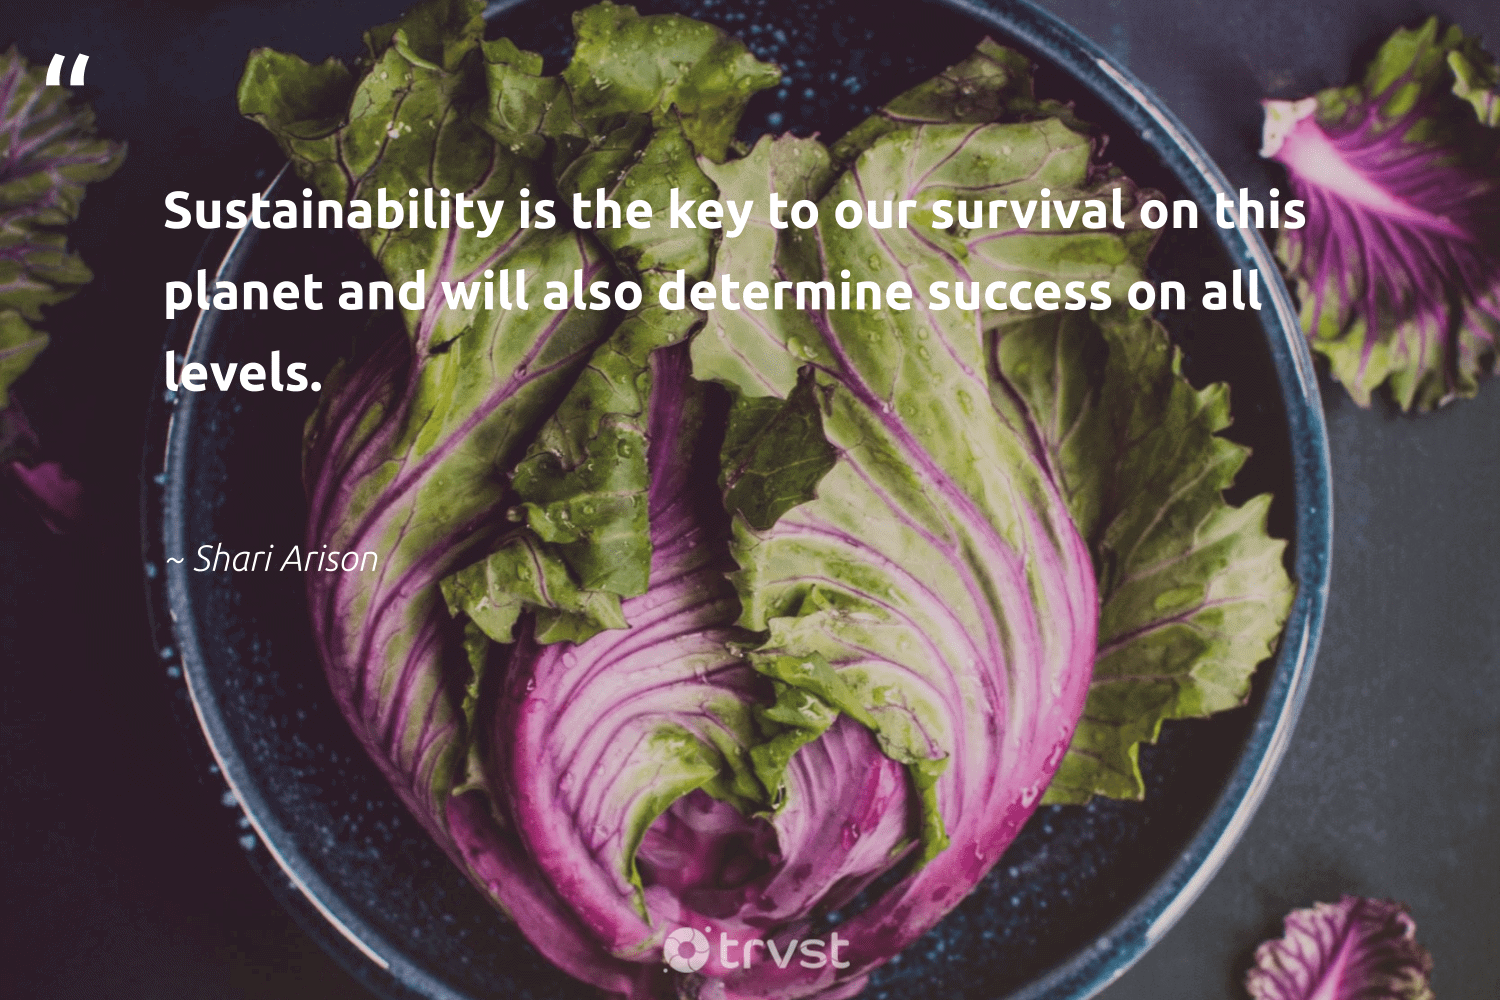 """""""Sustainability is the key to our survival on this planet and will also determine success on all levels.""""  - Shari Arison #trvst #quotes #sustainability #planet #success #nature #fashion #sustainableliving #dosomething #conservation #green #eco"""